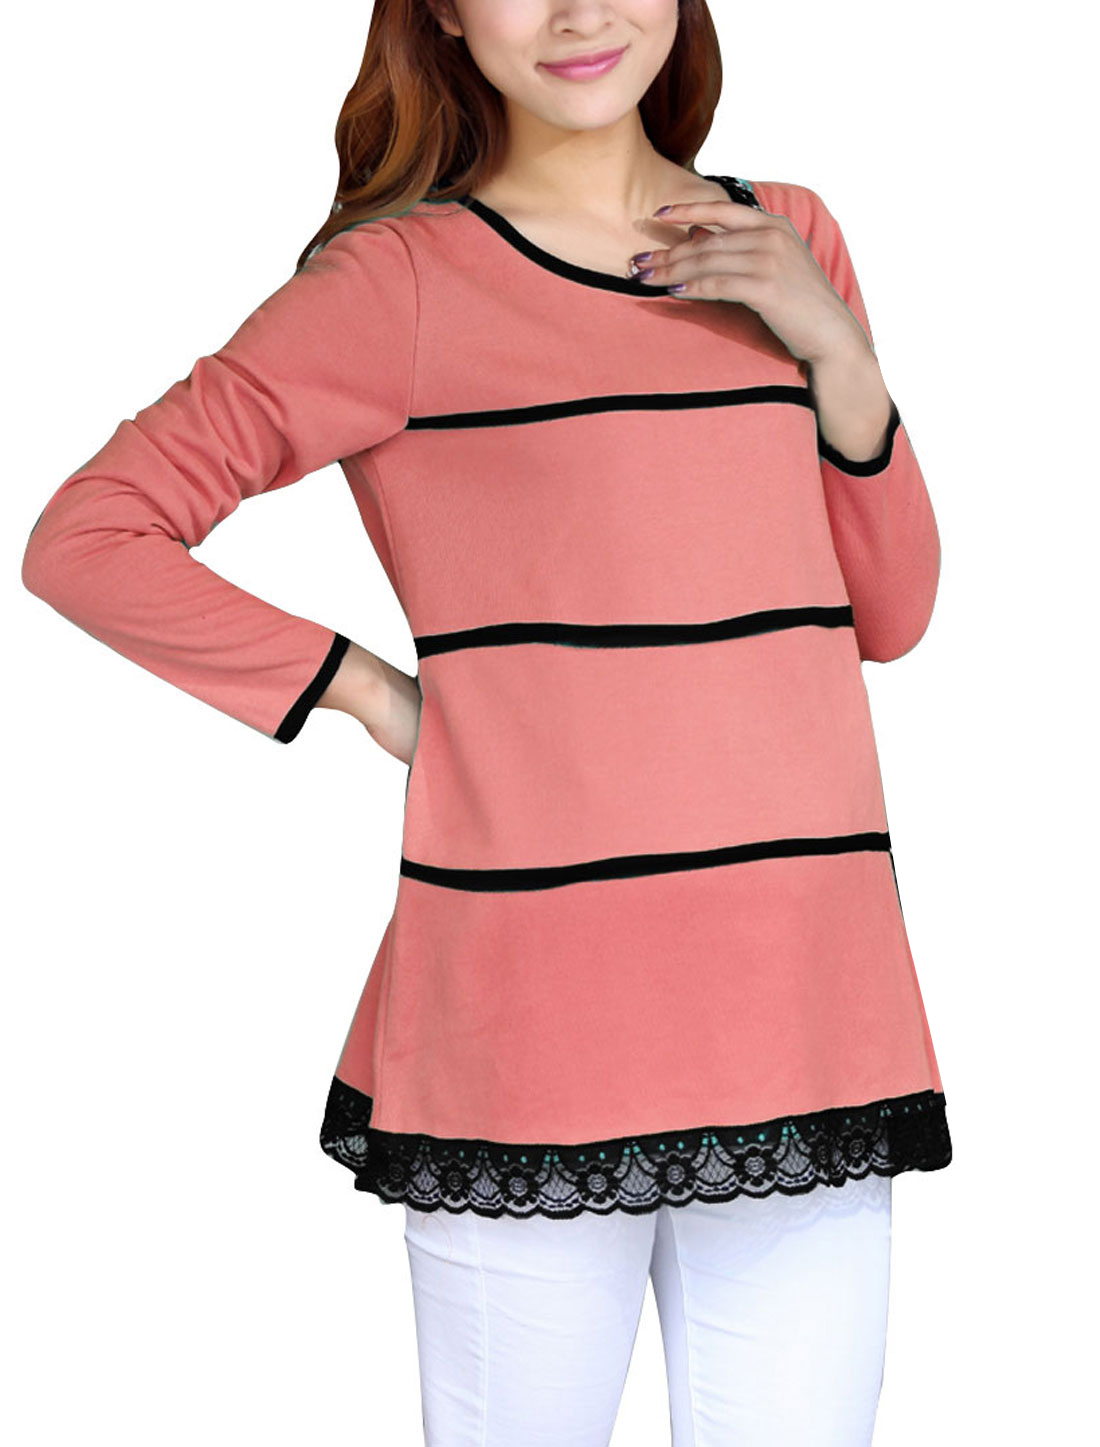 Maternity Pullover Spring Soft Knitwear Watermelon Red S